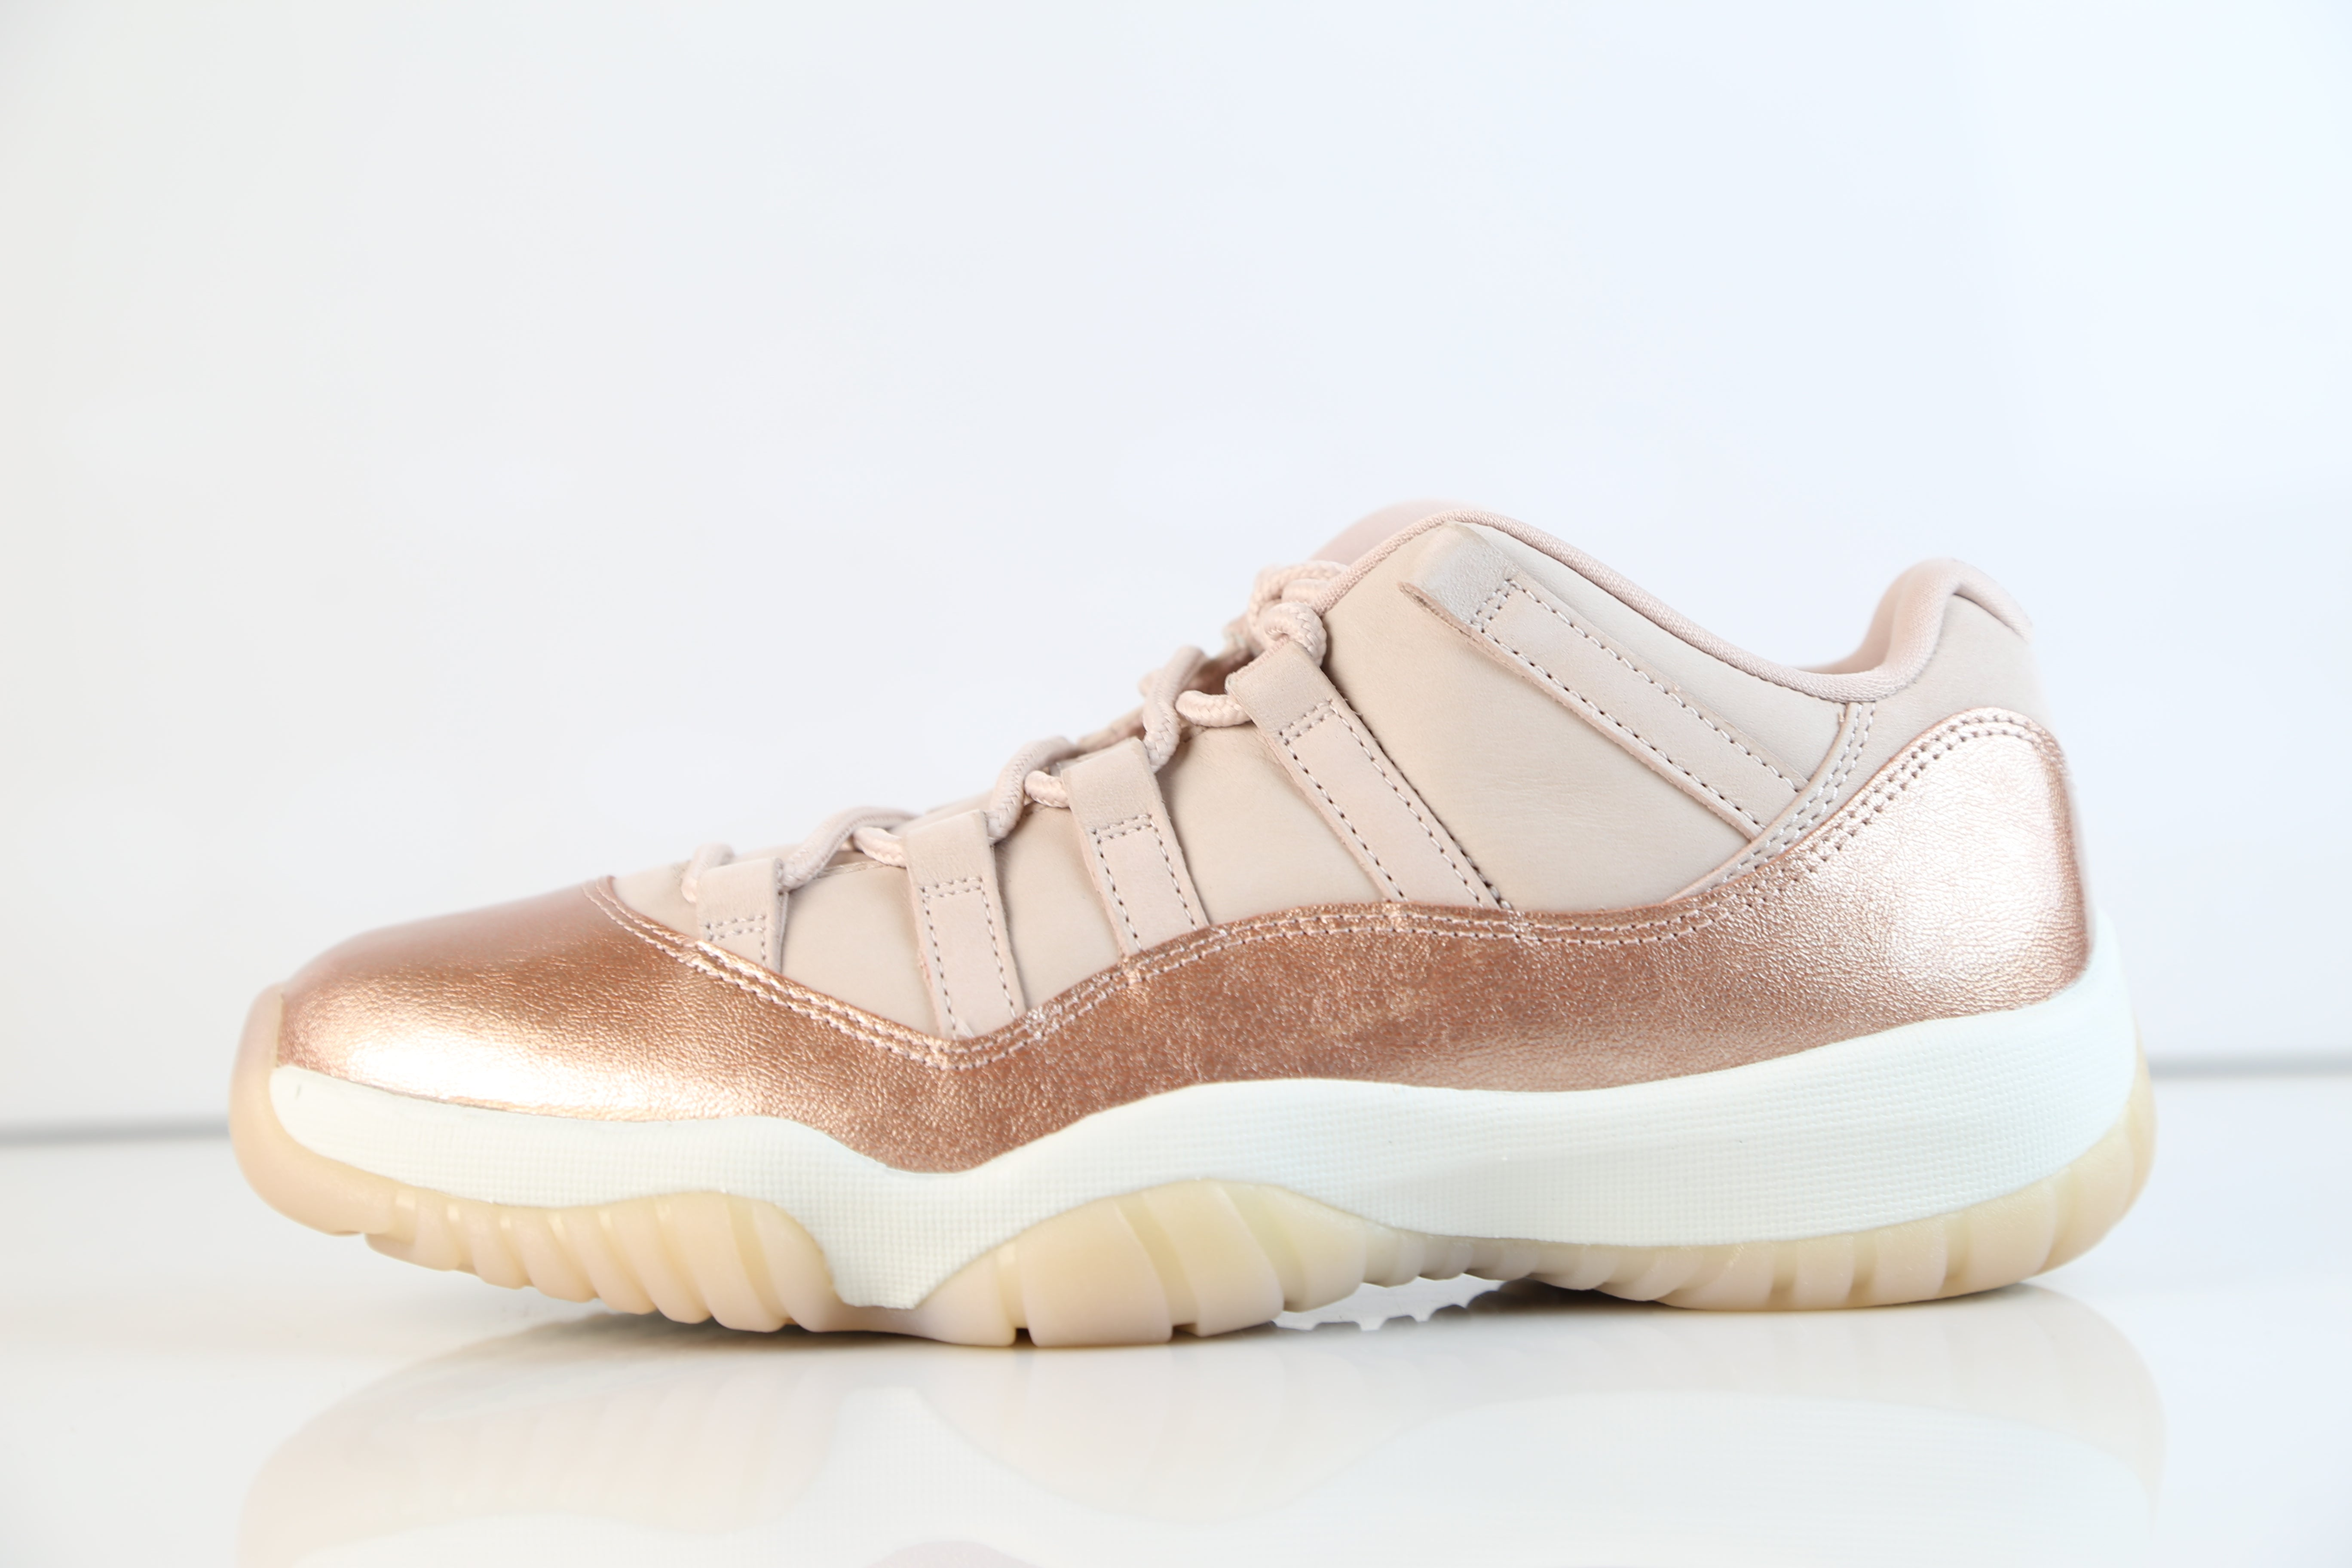 813945806c9e Nike Womens Air Jordan Retro 11 Low Rose Gold Red Bronze Sail AH7860 ...